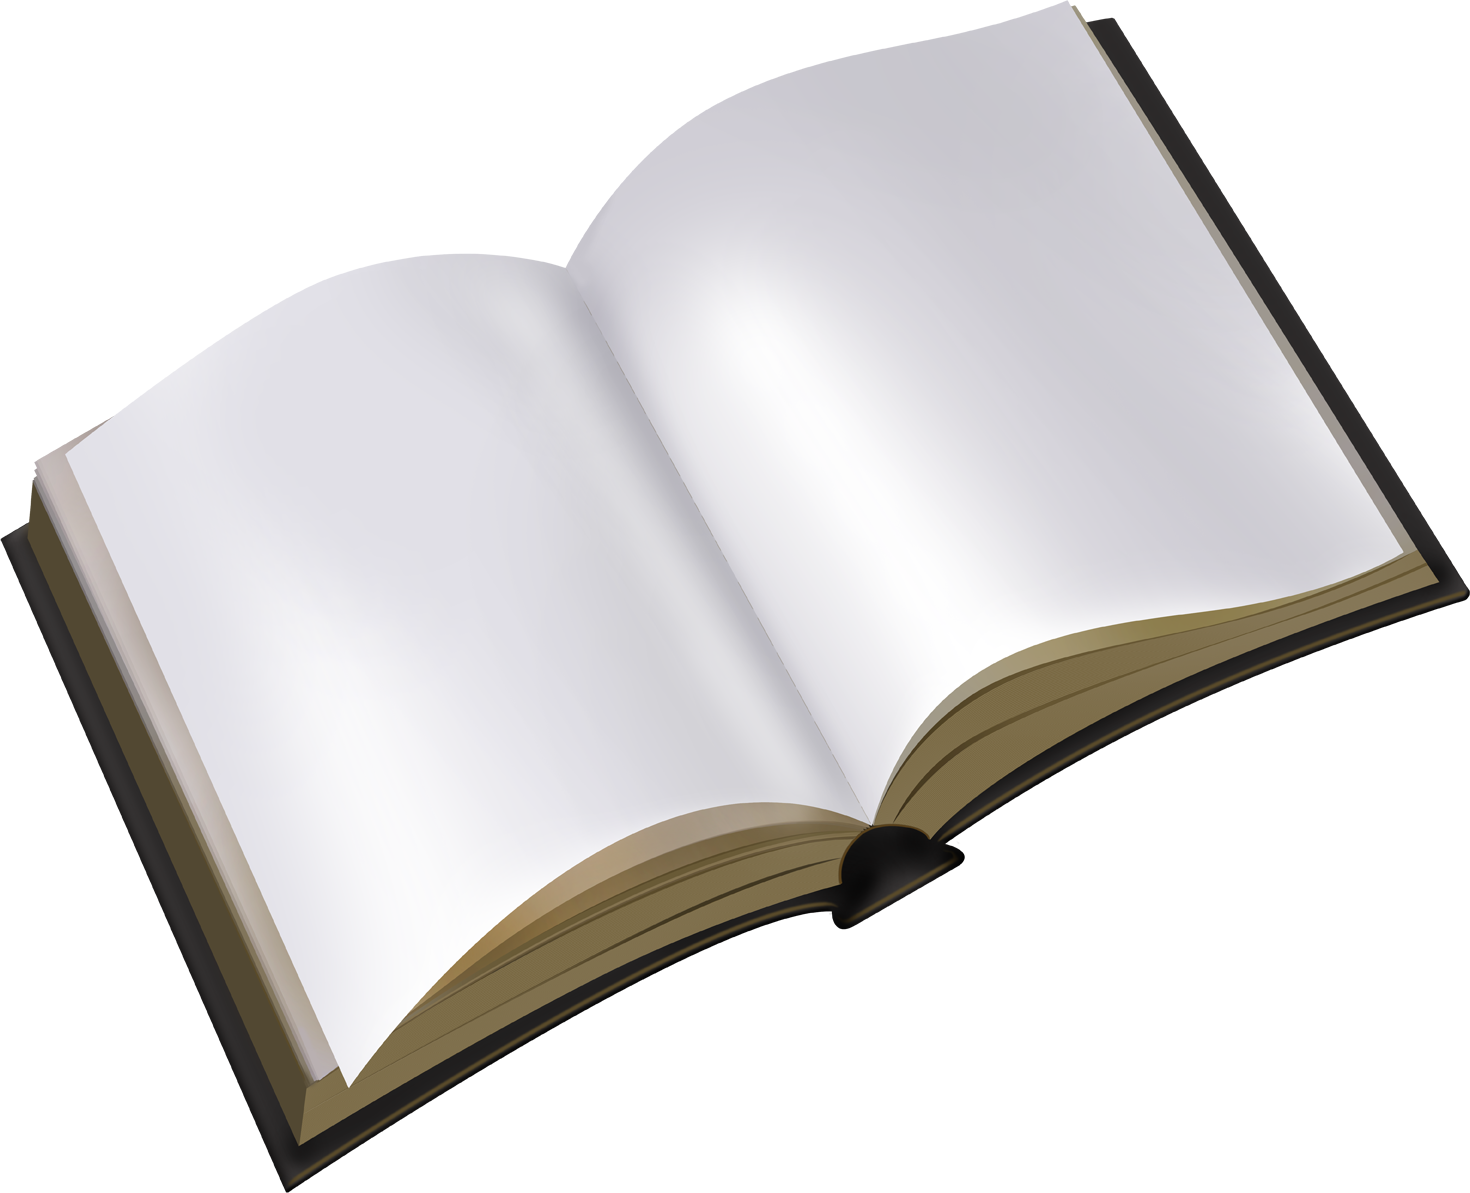 Blank book png #25671.